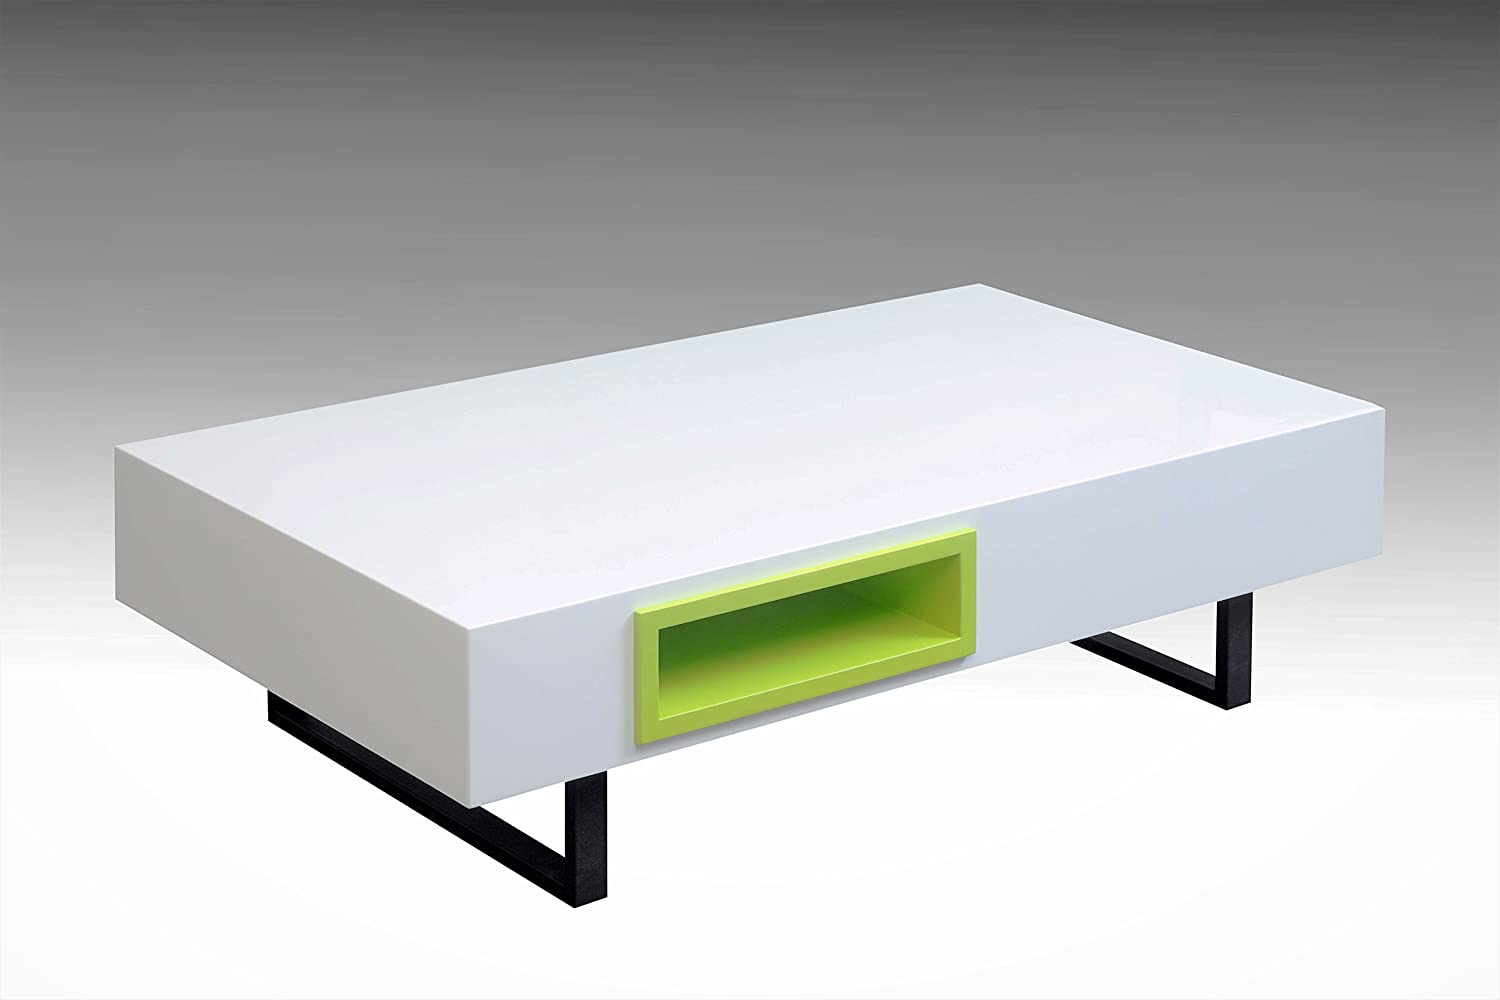 Amazon new spec cota 430 weib coffee table not applicable amazon new spec cota 430 weib coffee table not applicable whitegreen contrast kitchen dining geotapseo Images